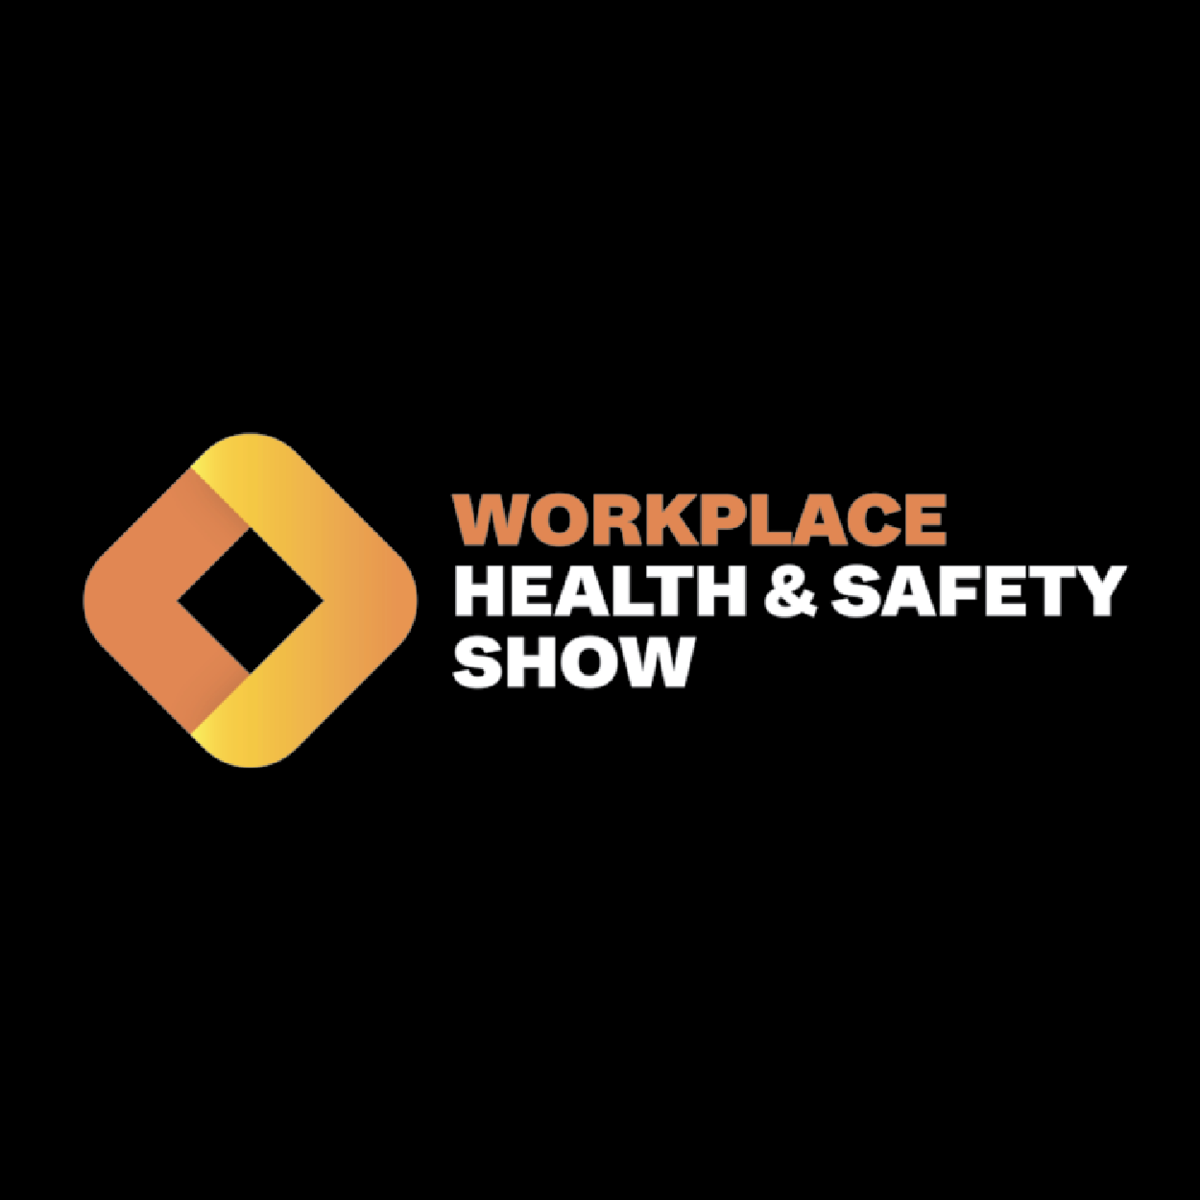 Workplace Health & Safety Show - Melbourne